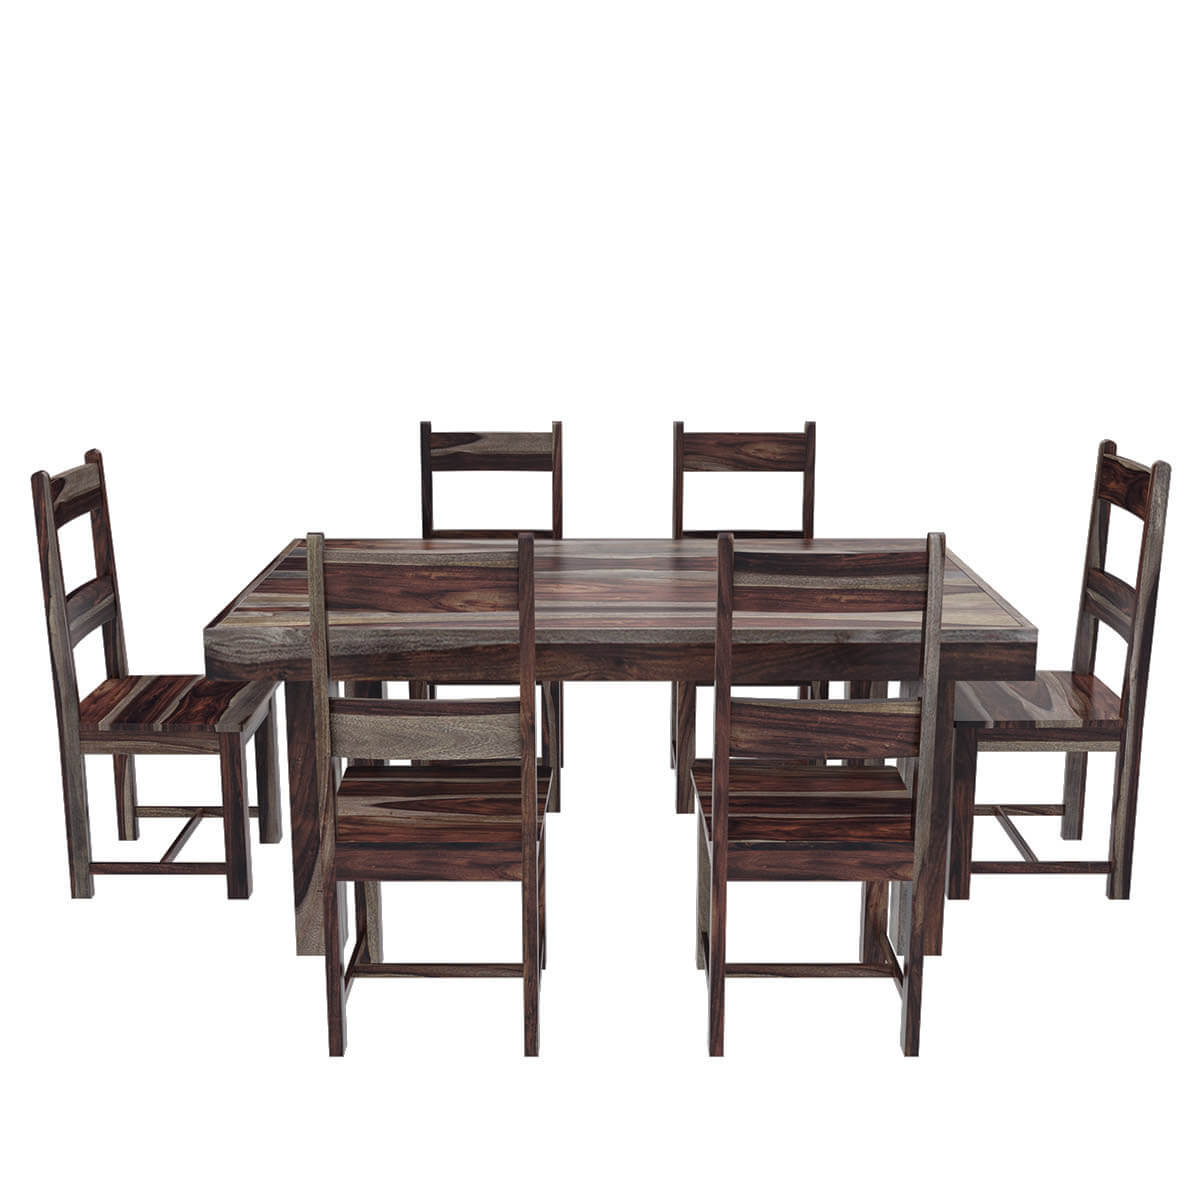 rustic dining table and chairs timber ridge folding chair frisco modern solid wood casual room